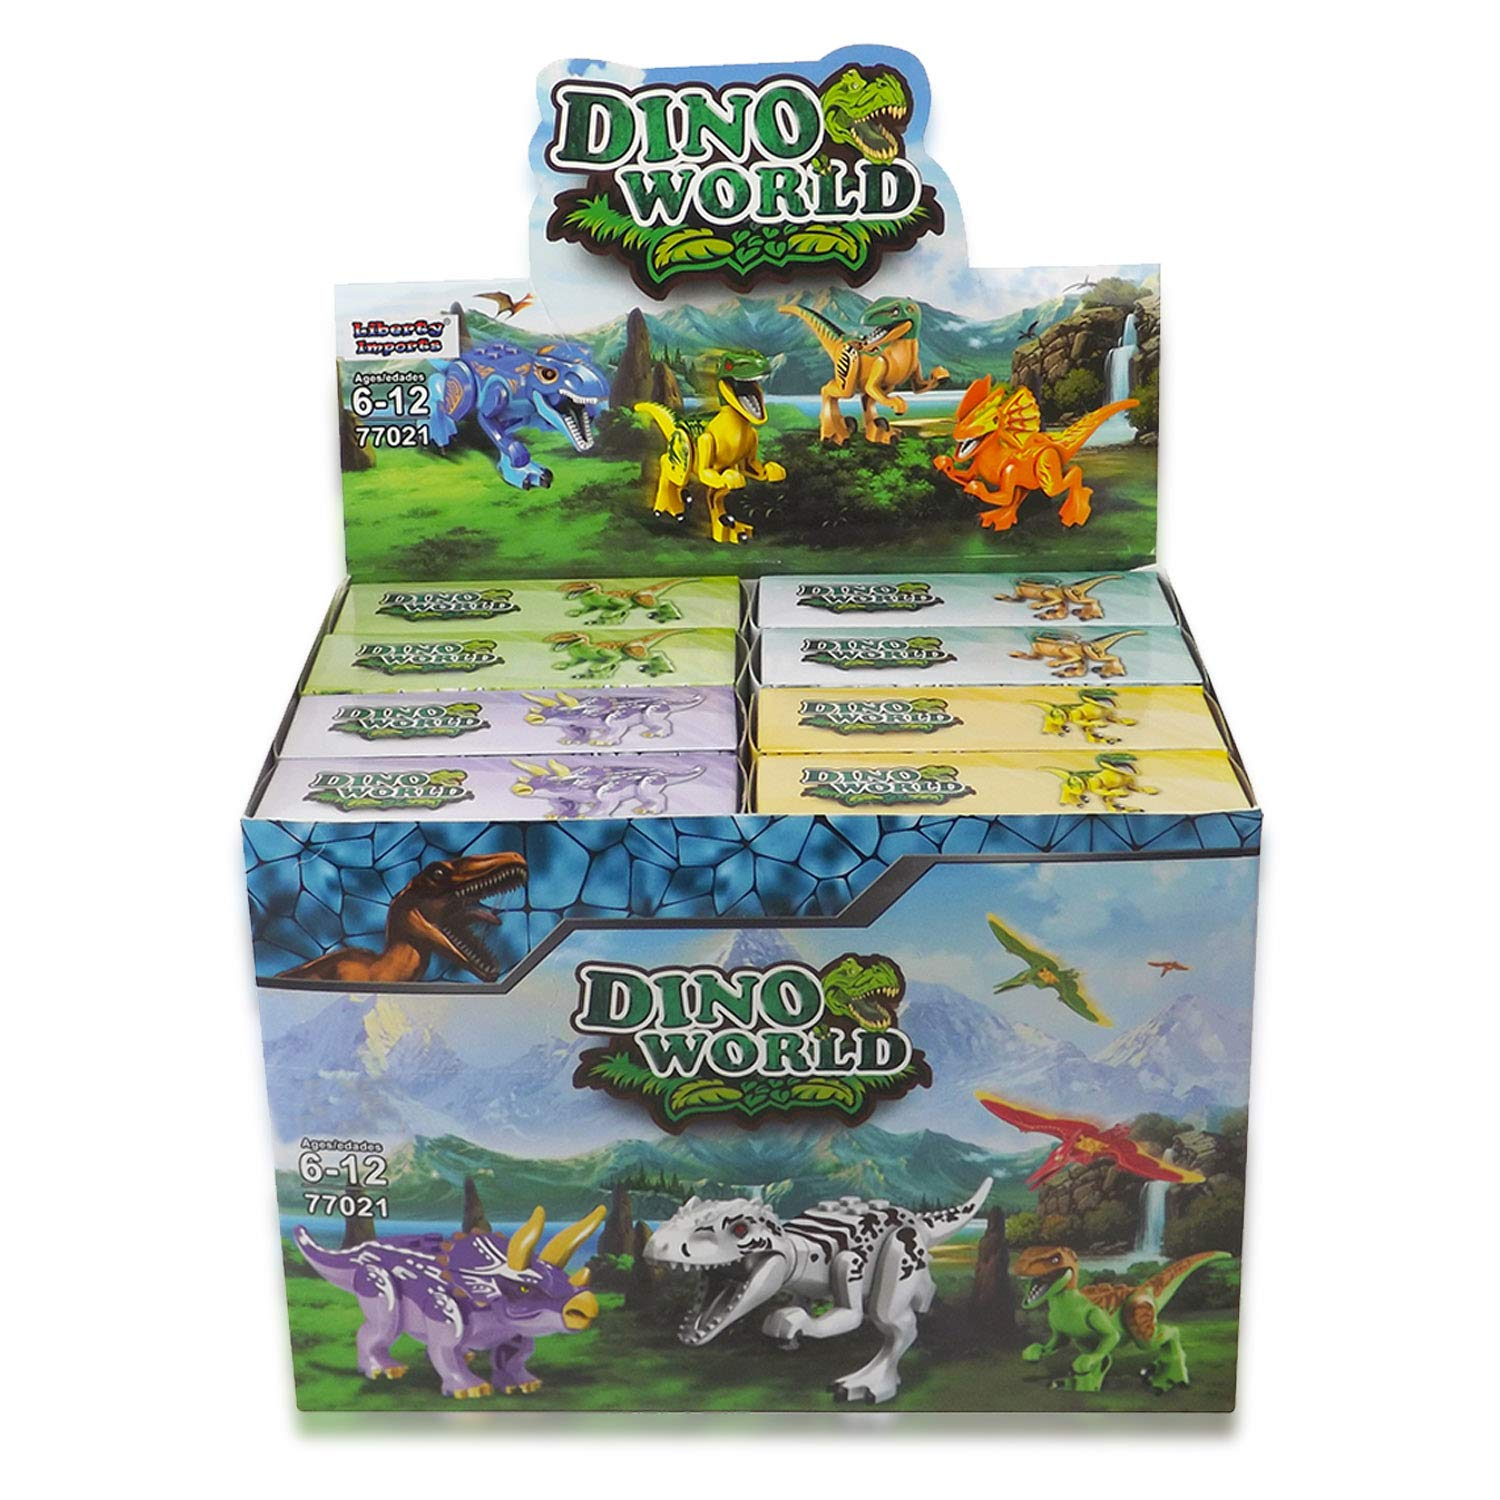 Set of 16 Liberty Imports Dino World Dinosaur Building Blocks Miniature Action Figures Jurassic Toys Kids Bulk Party Favors Gift Pack